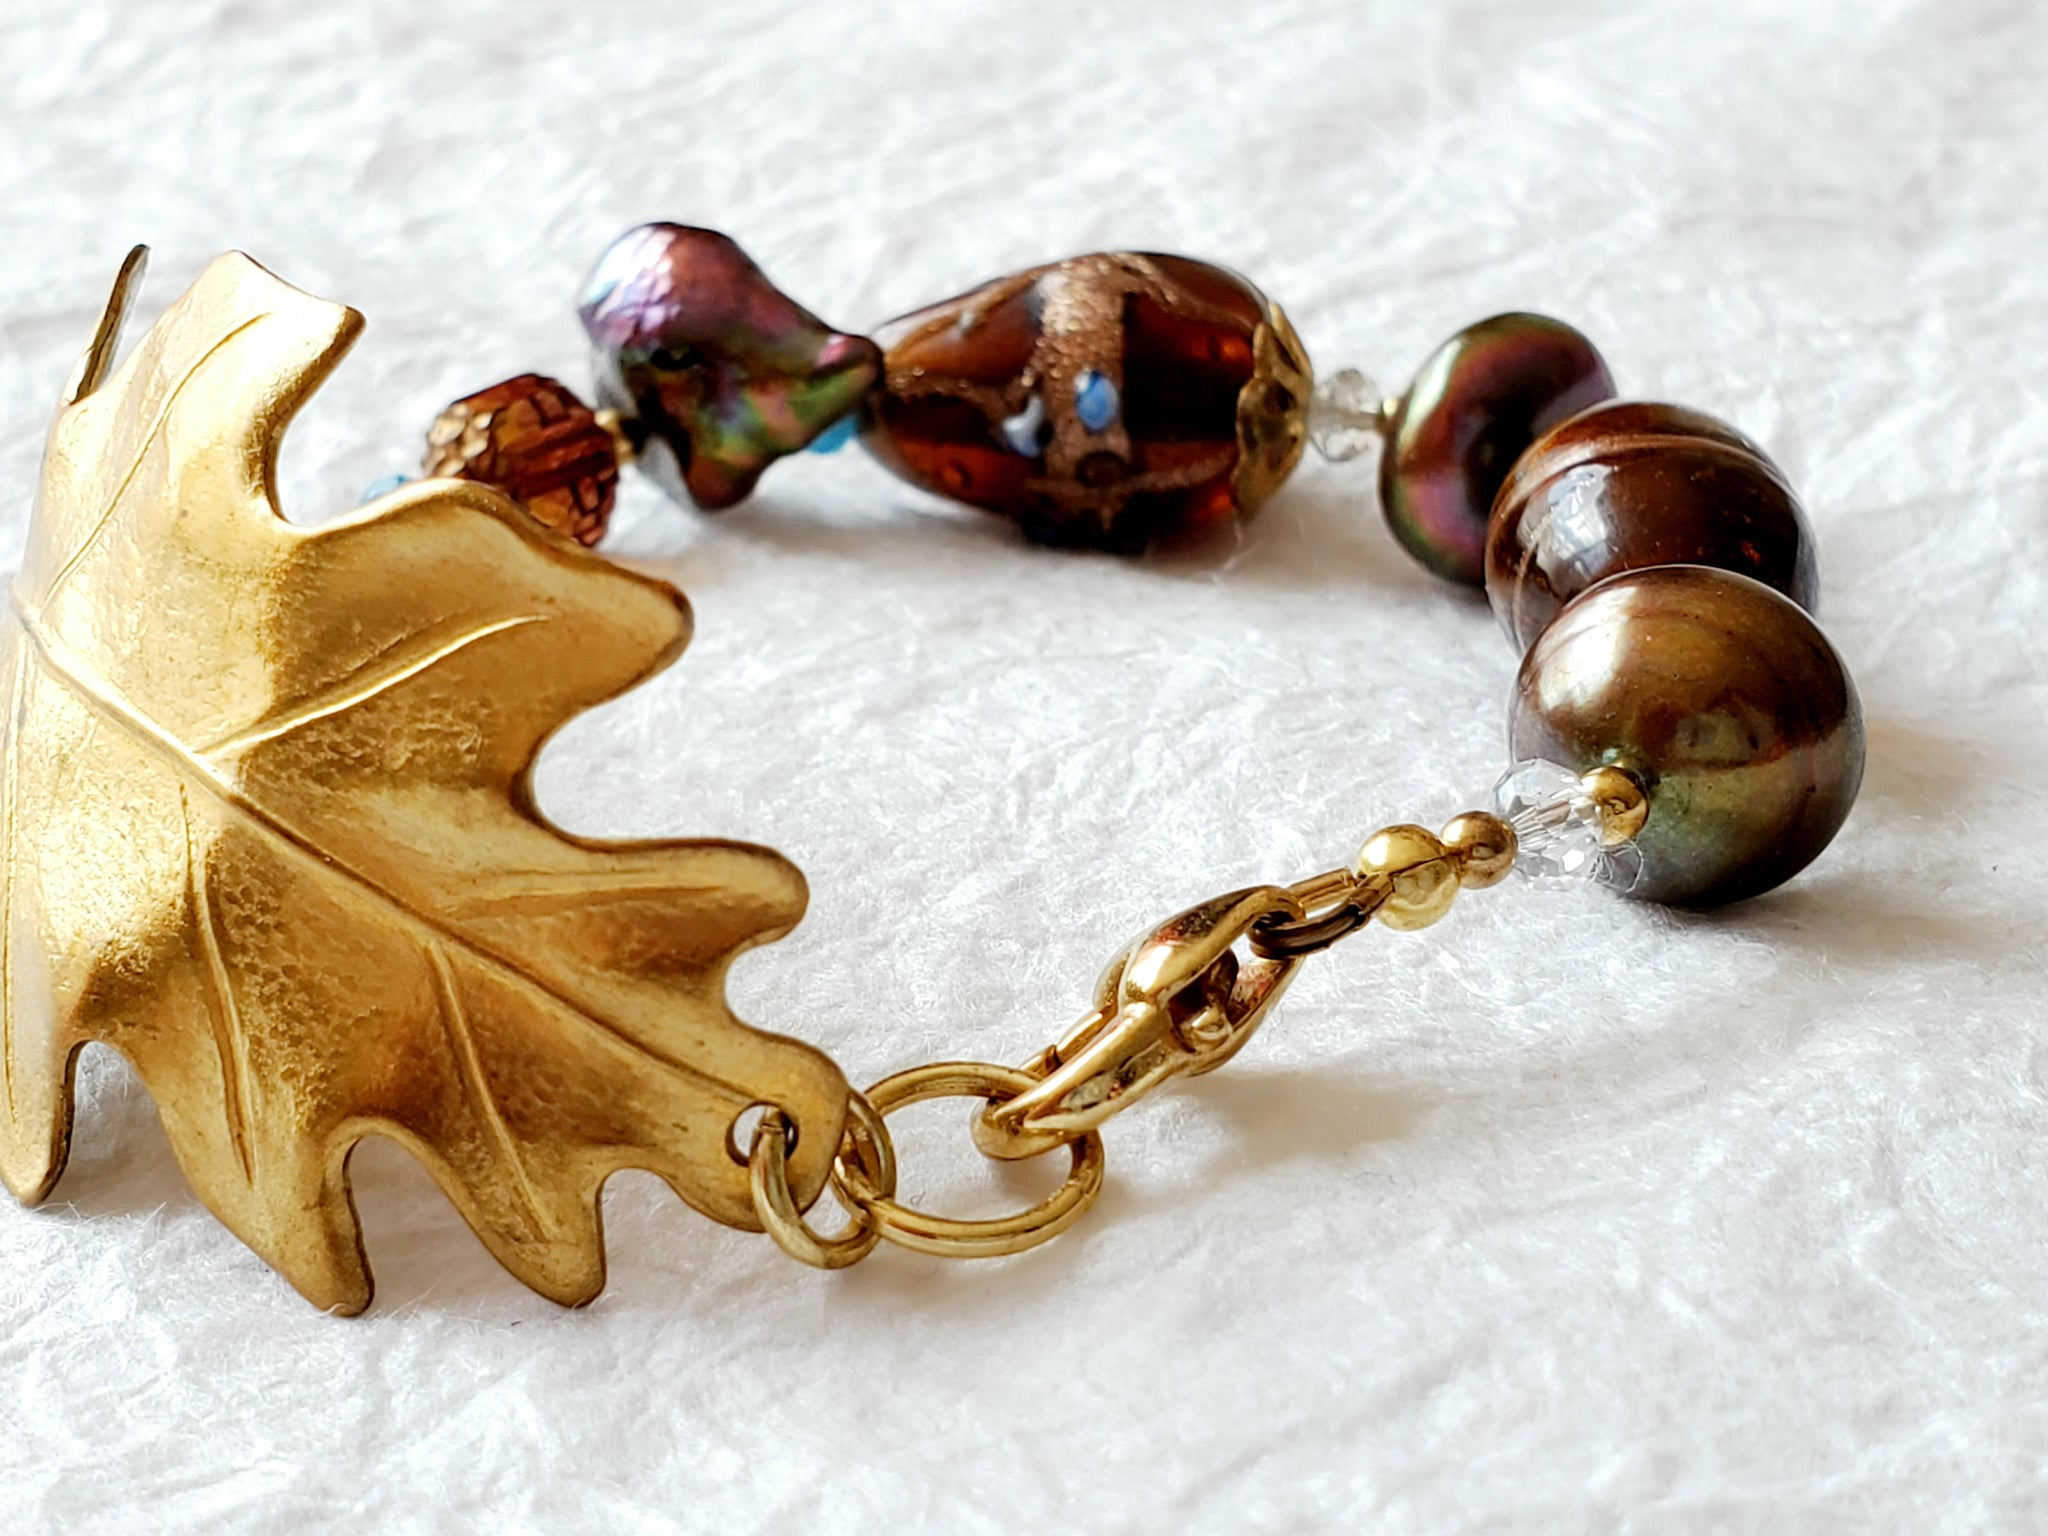 Textured Solid Brass Leaf and Purple Glass Lampwork Beads Statement Bracelet, India Arie